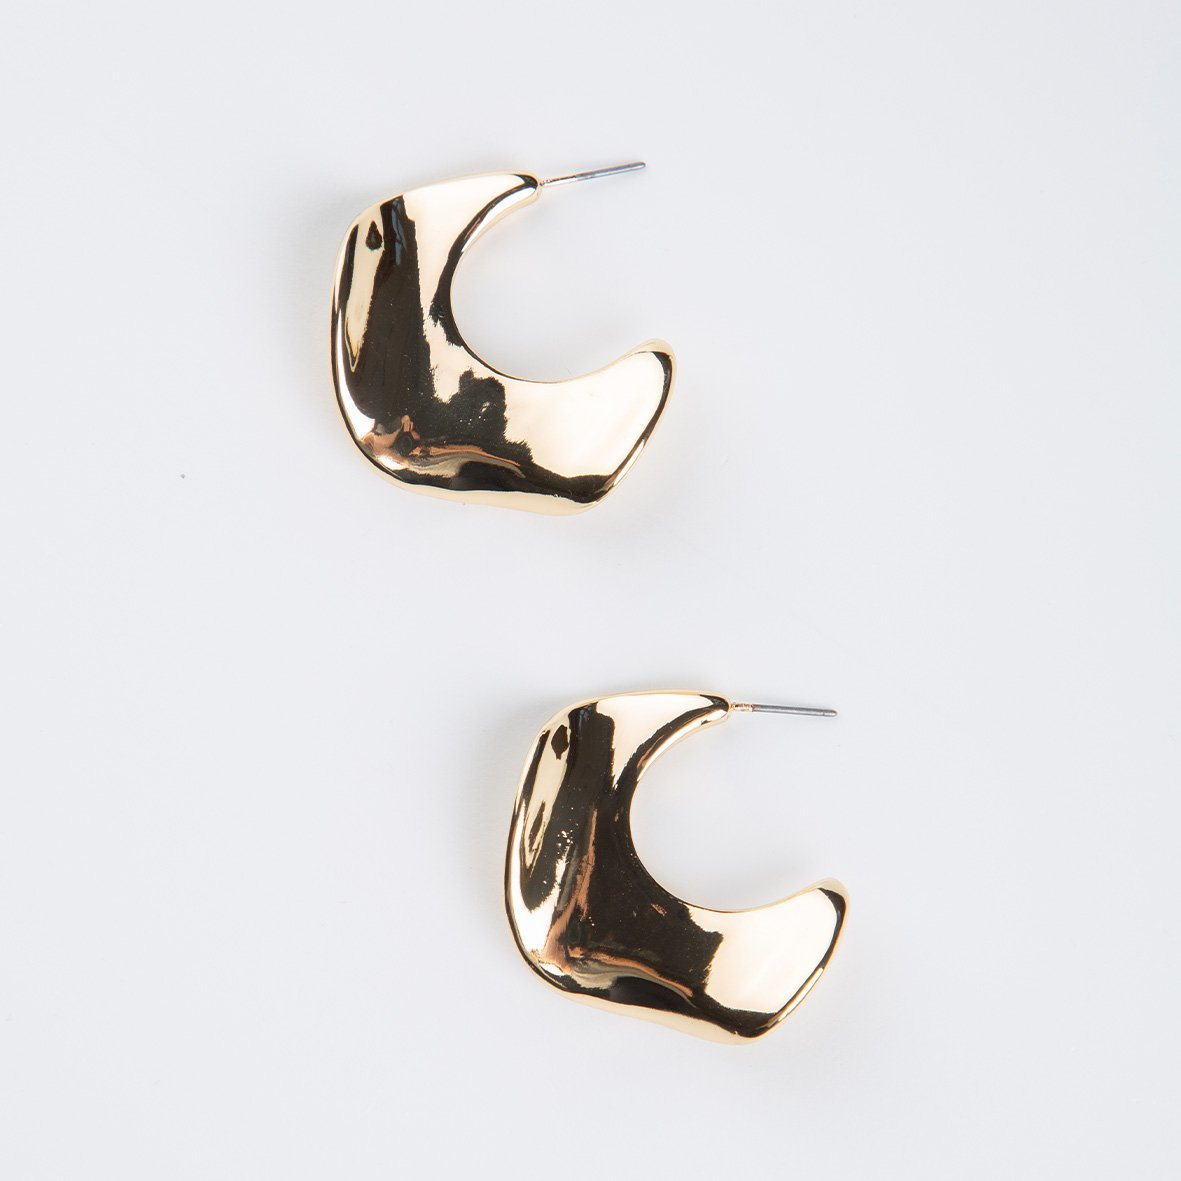 curAtiv proudly gives you Taipei Organic Wave Square Hoops - Gold Earrings.